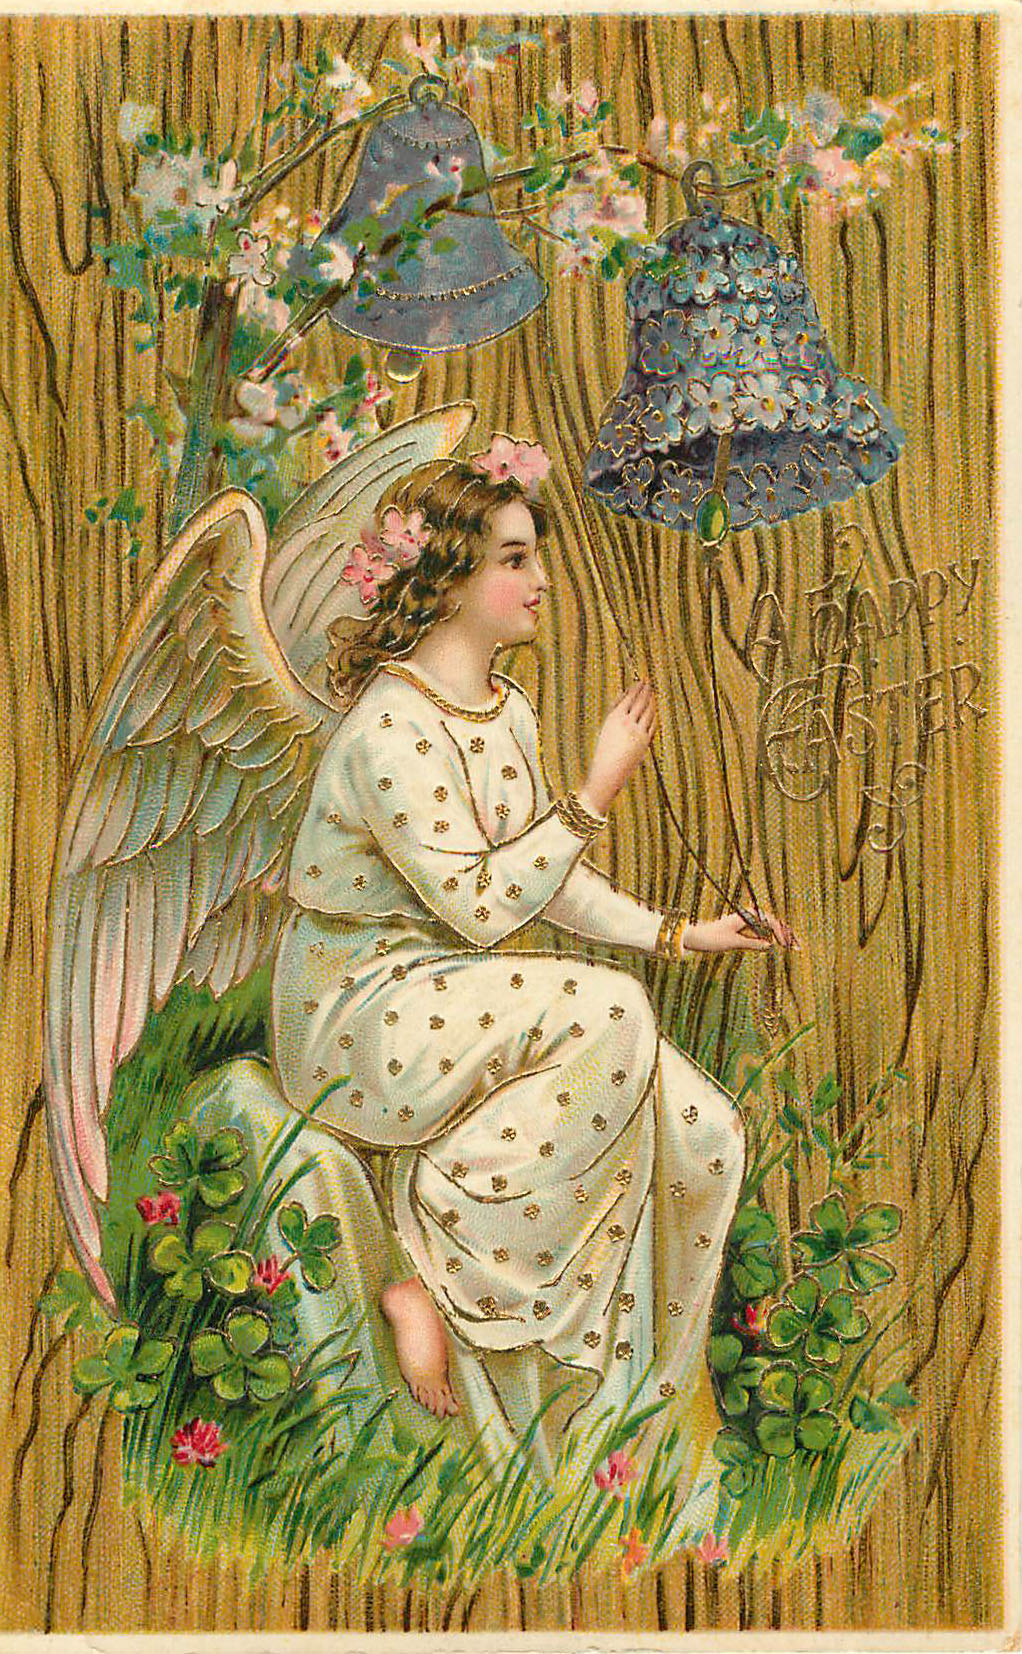 A Happy Easter - Angel sitting with 2 purple bells above, wood